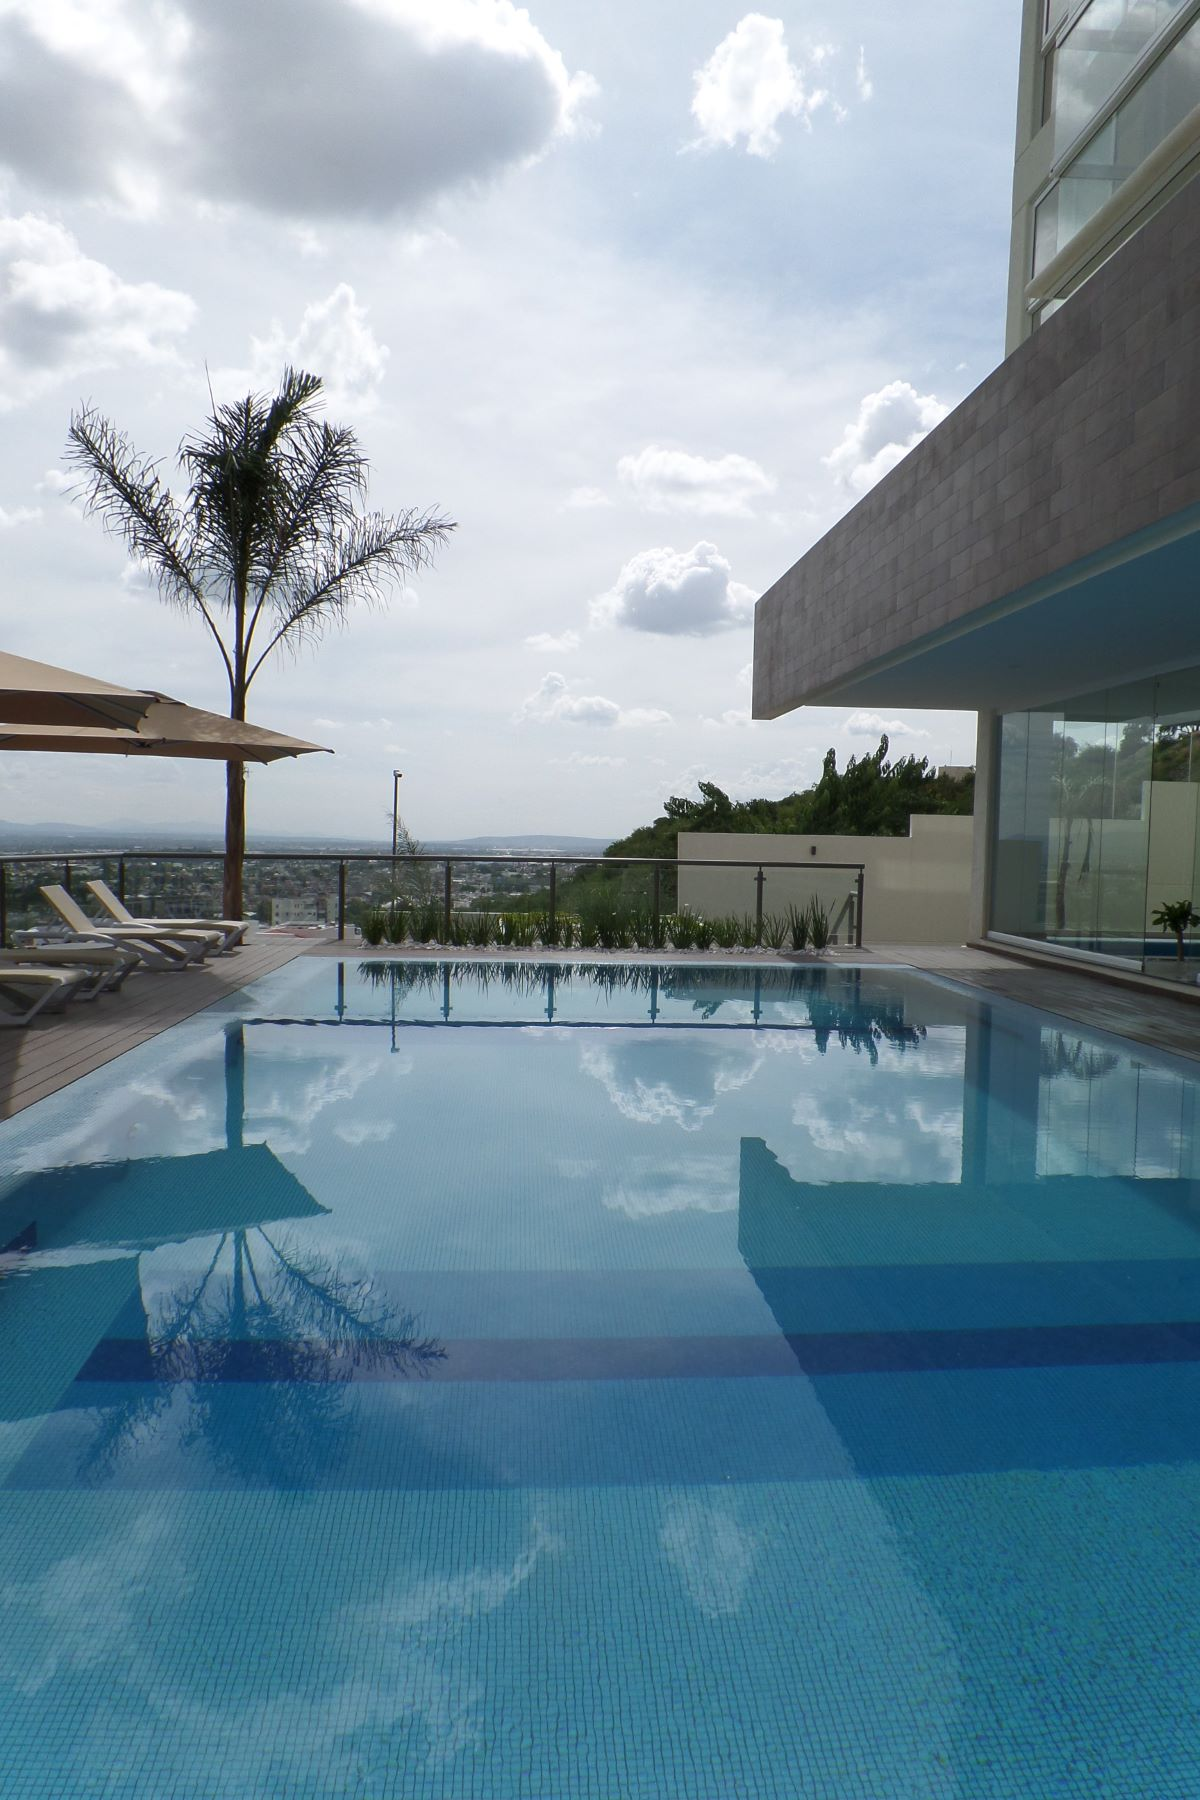 Single Family Home for Rent at Campanario Elite 62 Queretaro, Queretaro, Mexico